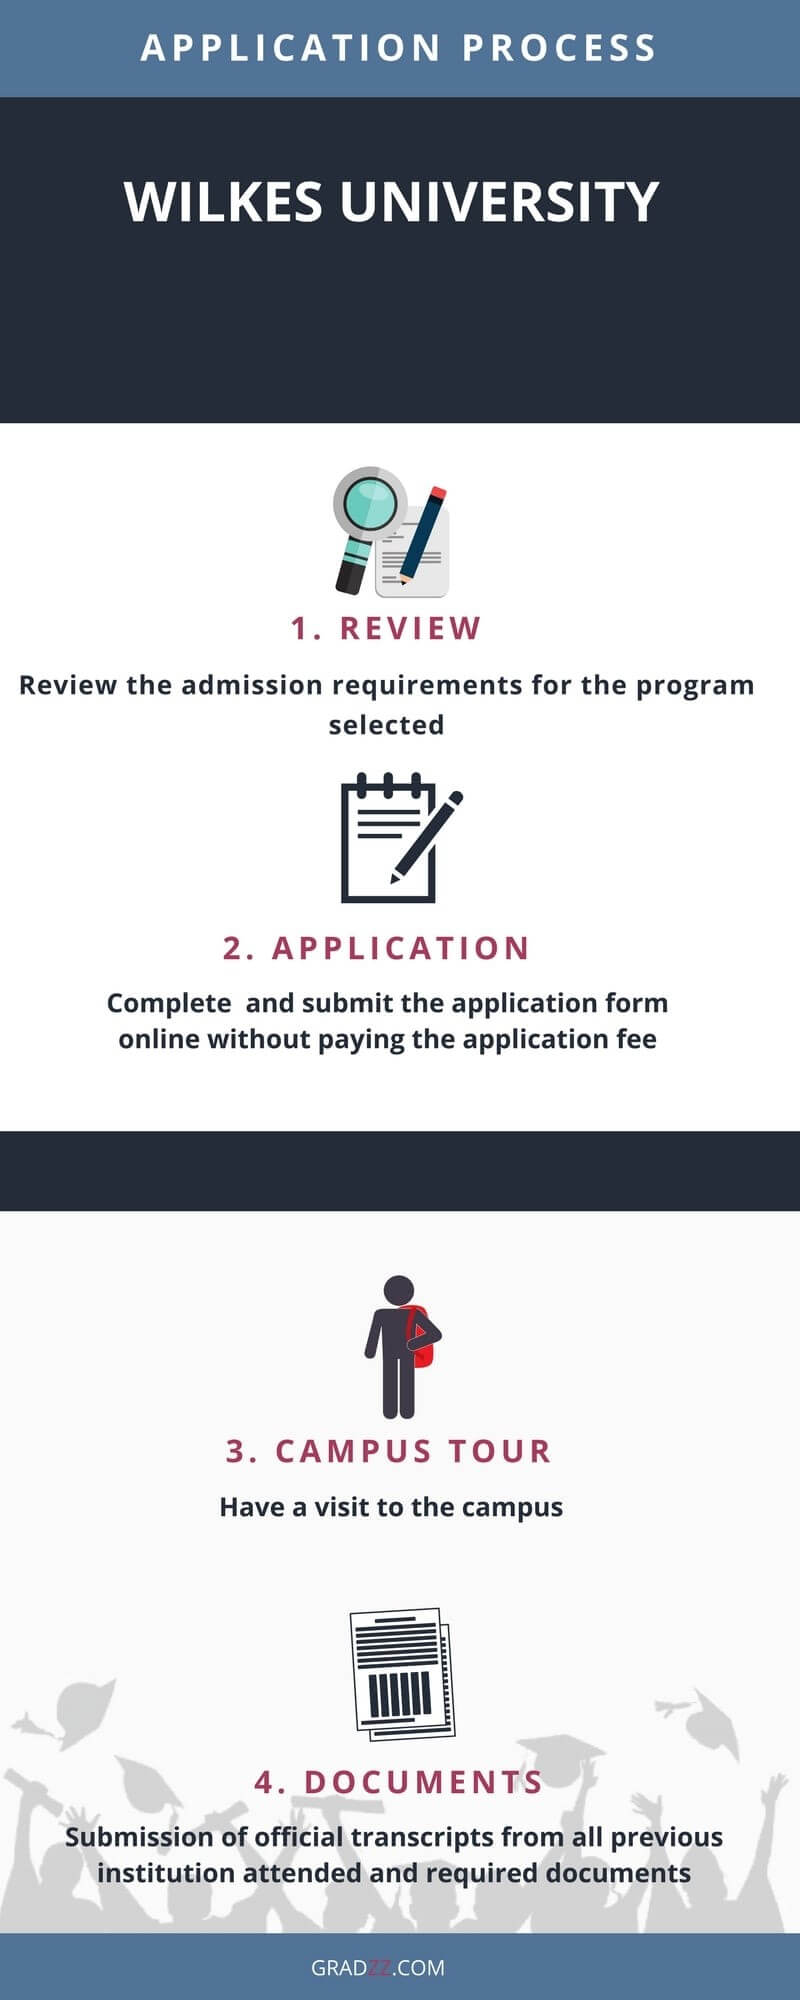 Wilkes University Application Process